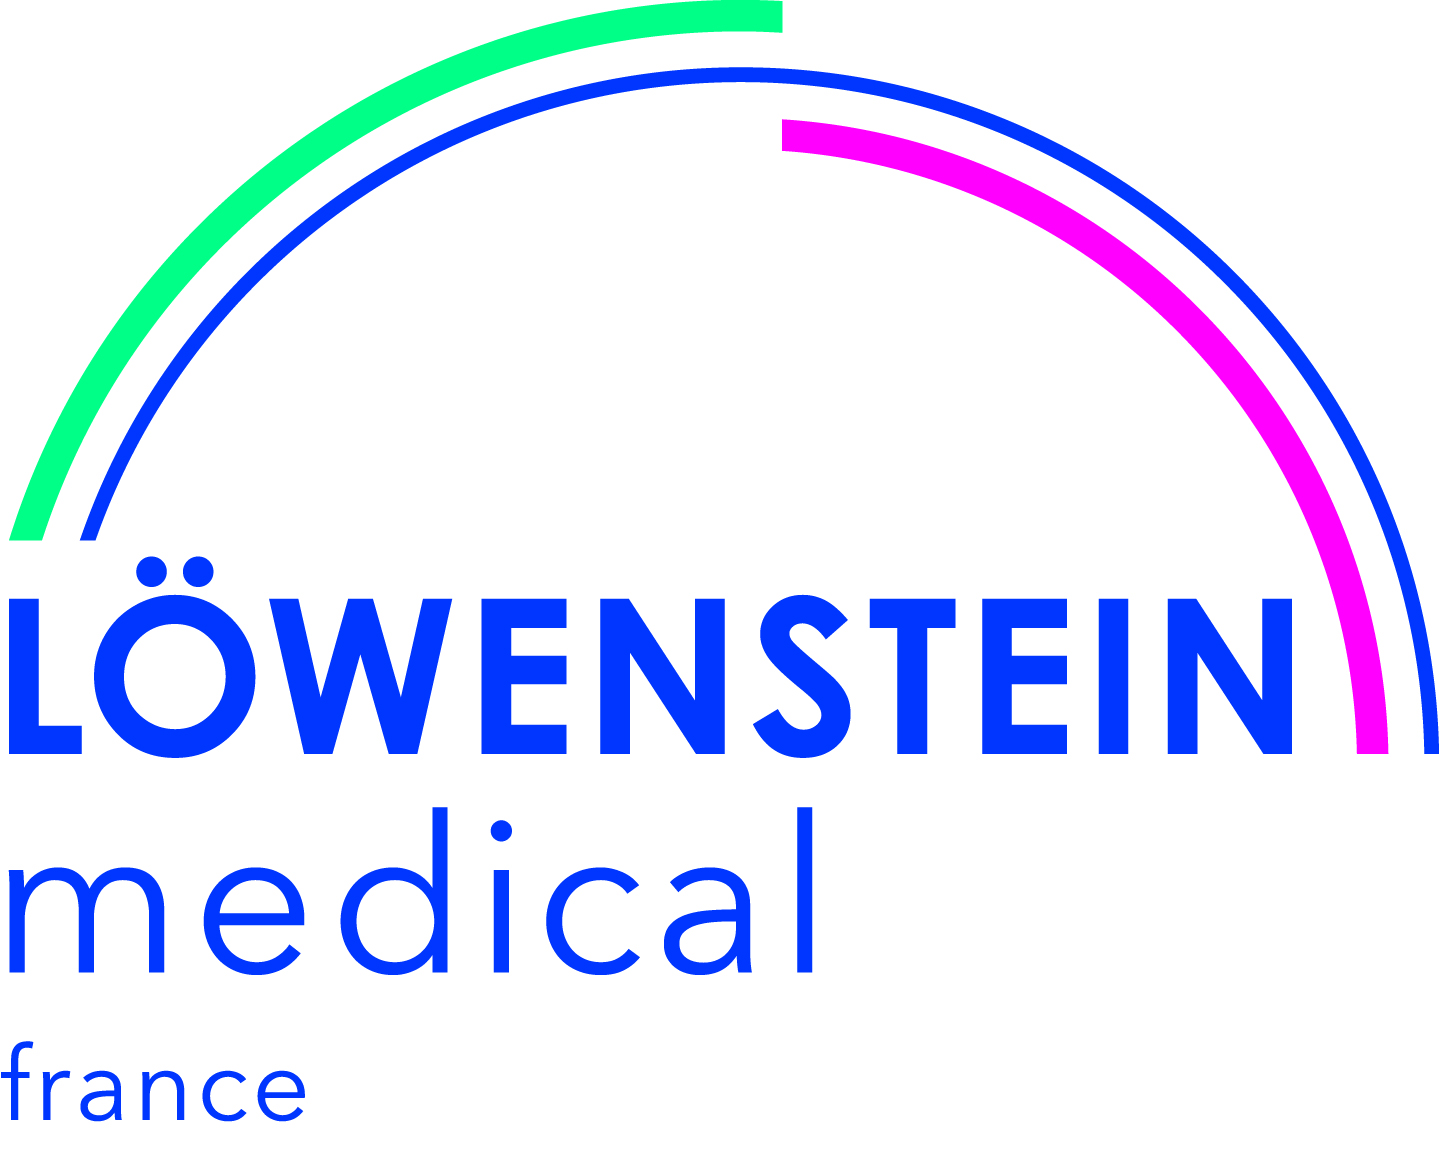 Löwenstein Medical France